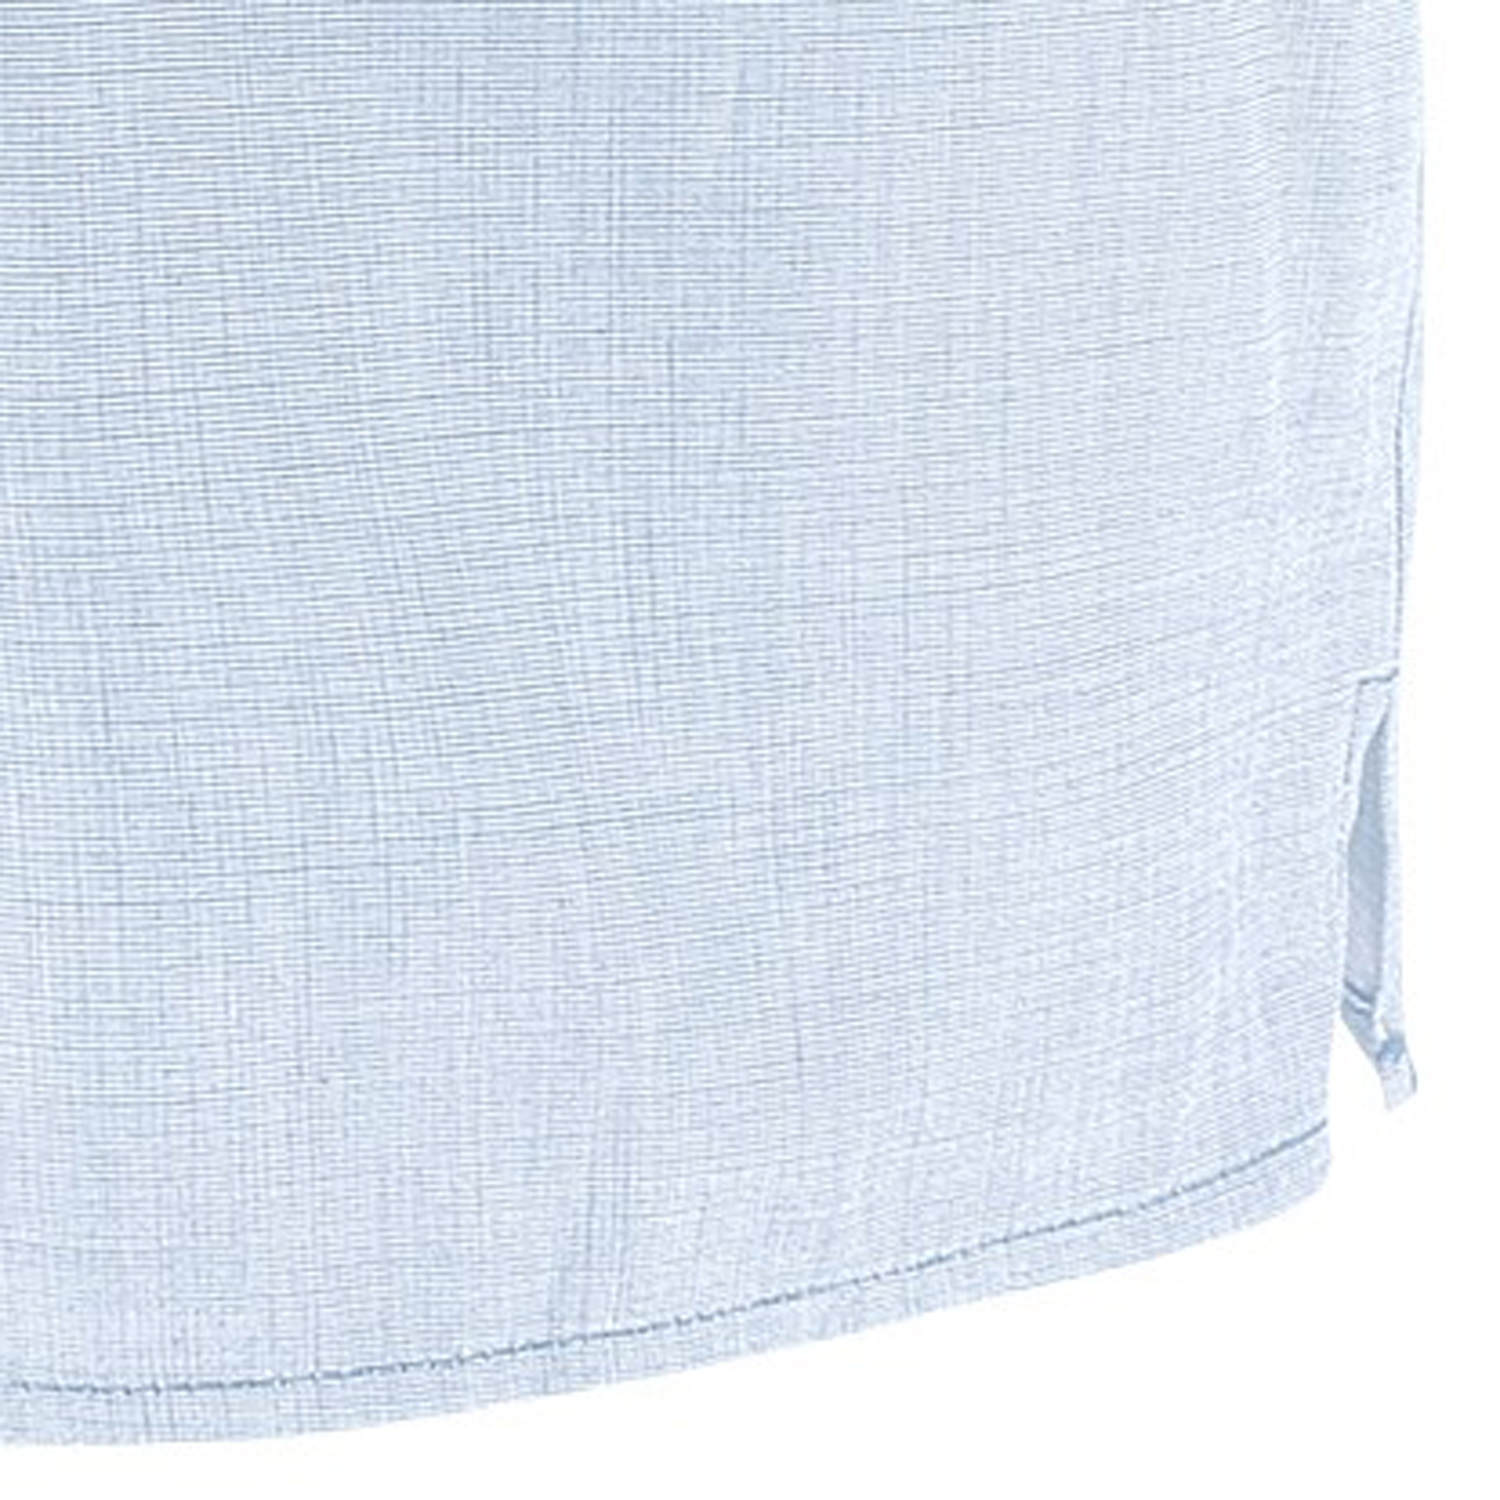 Detail Image to White-Blue checked pants from Jockey in outsizes until 6XL